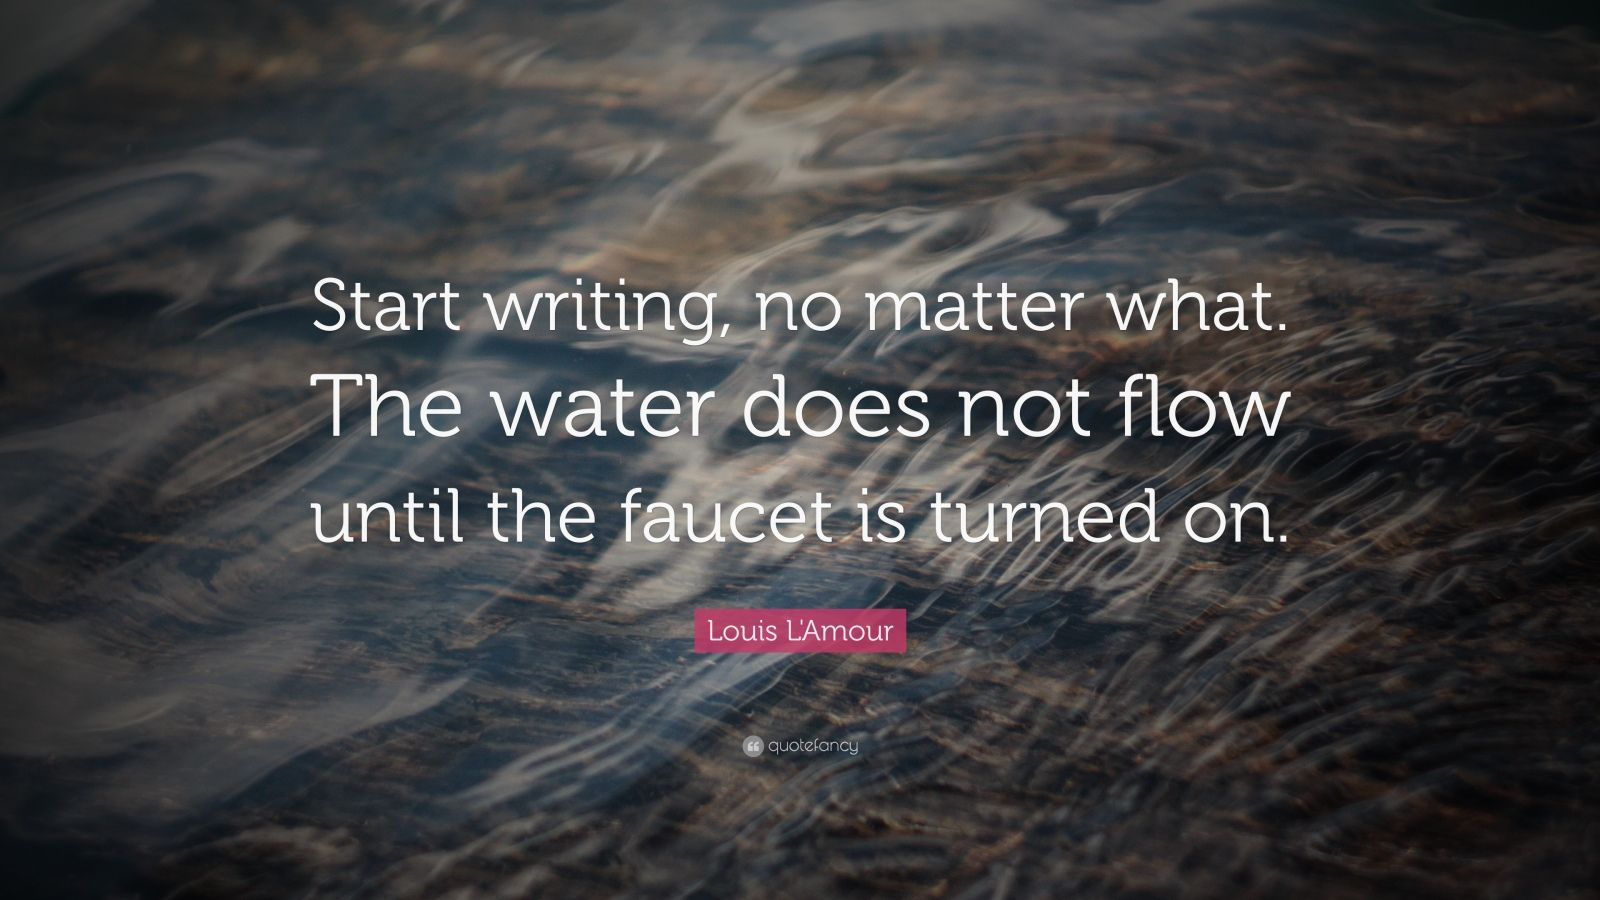 "Quotes About Writing: ""Start writing, no matter what. The water does not flow until the faucet is turned on."" — Louis L'Amour"